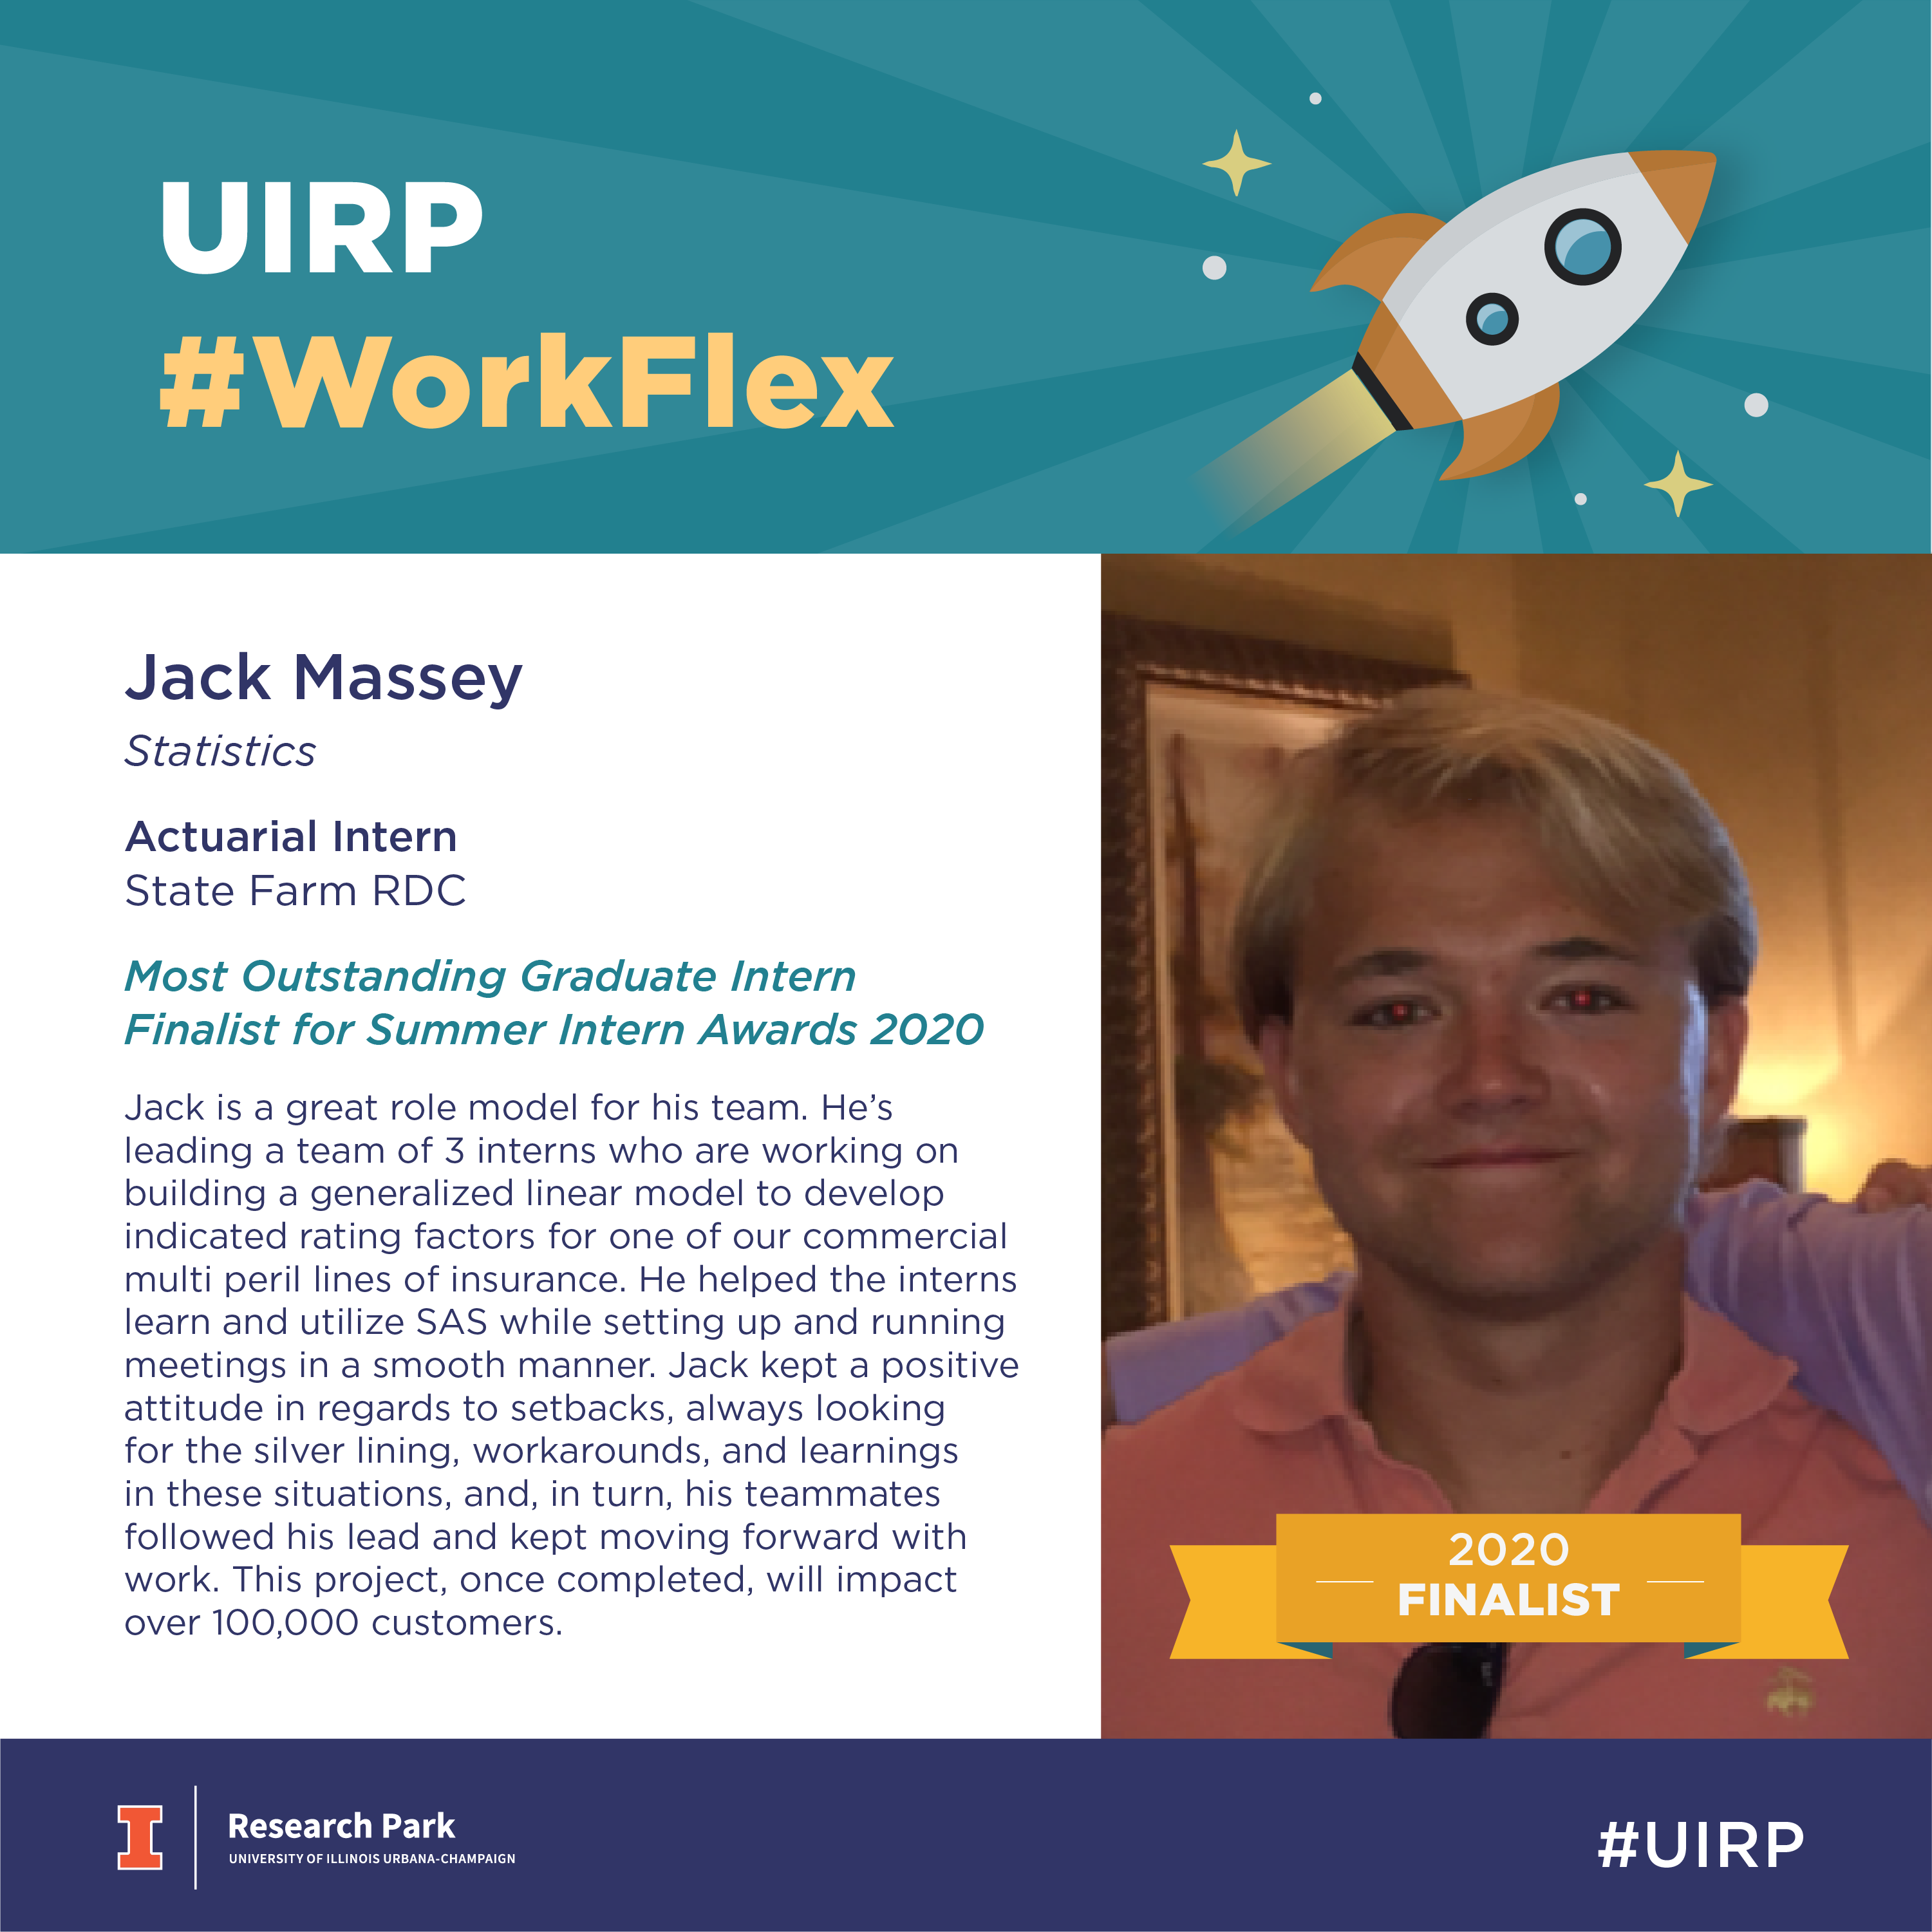 Jack Massey, Actuarial Intern at State Farm RDC